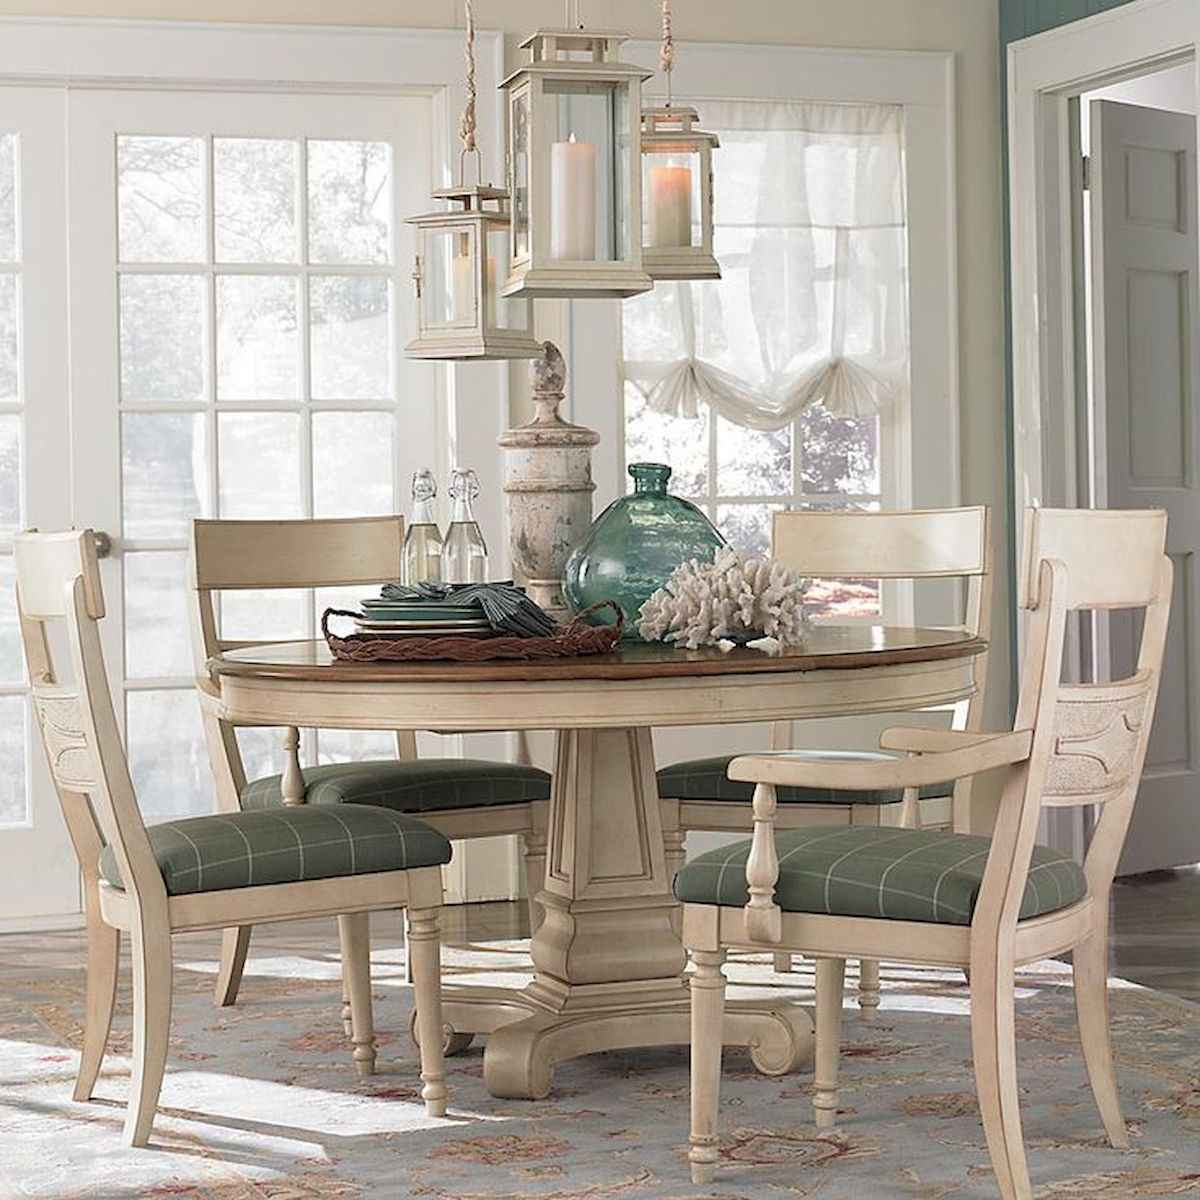 50 Vintage Dining Table Design Ideas And Decor (13)